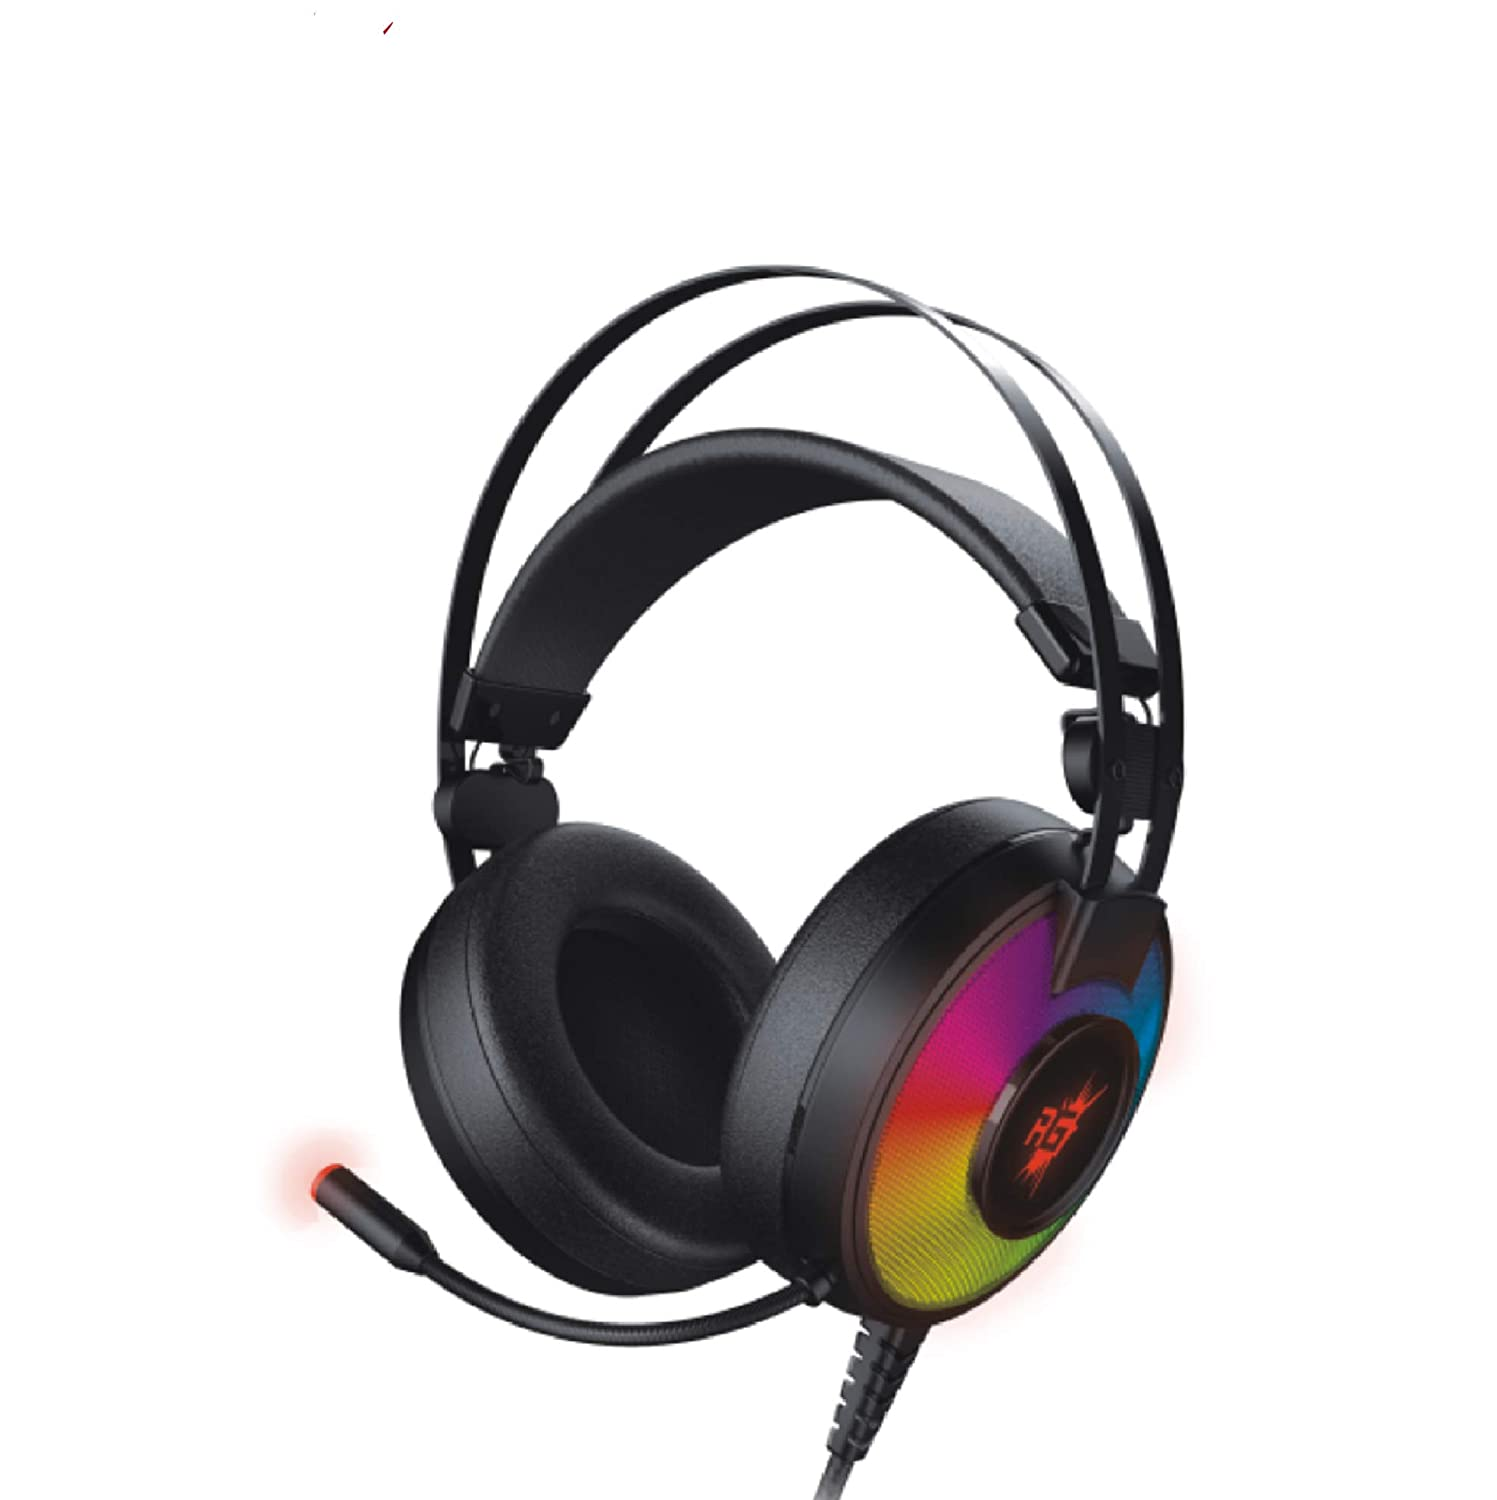 [Best] Gaming Headphones Under ₹2000 [Apr. 2021] 15